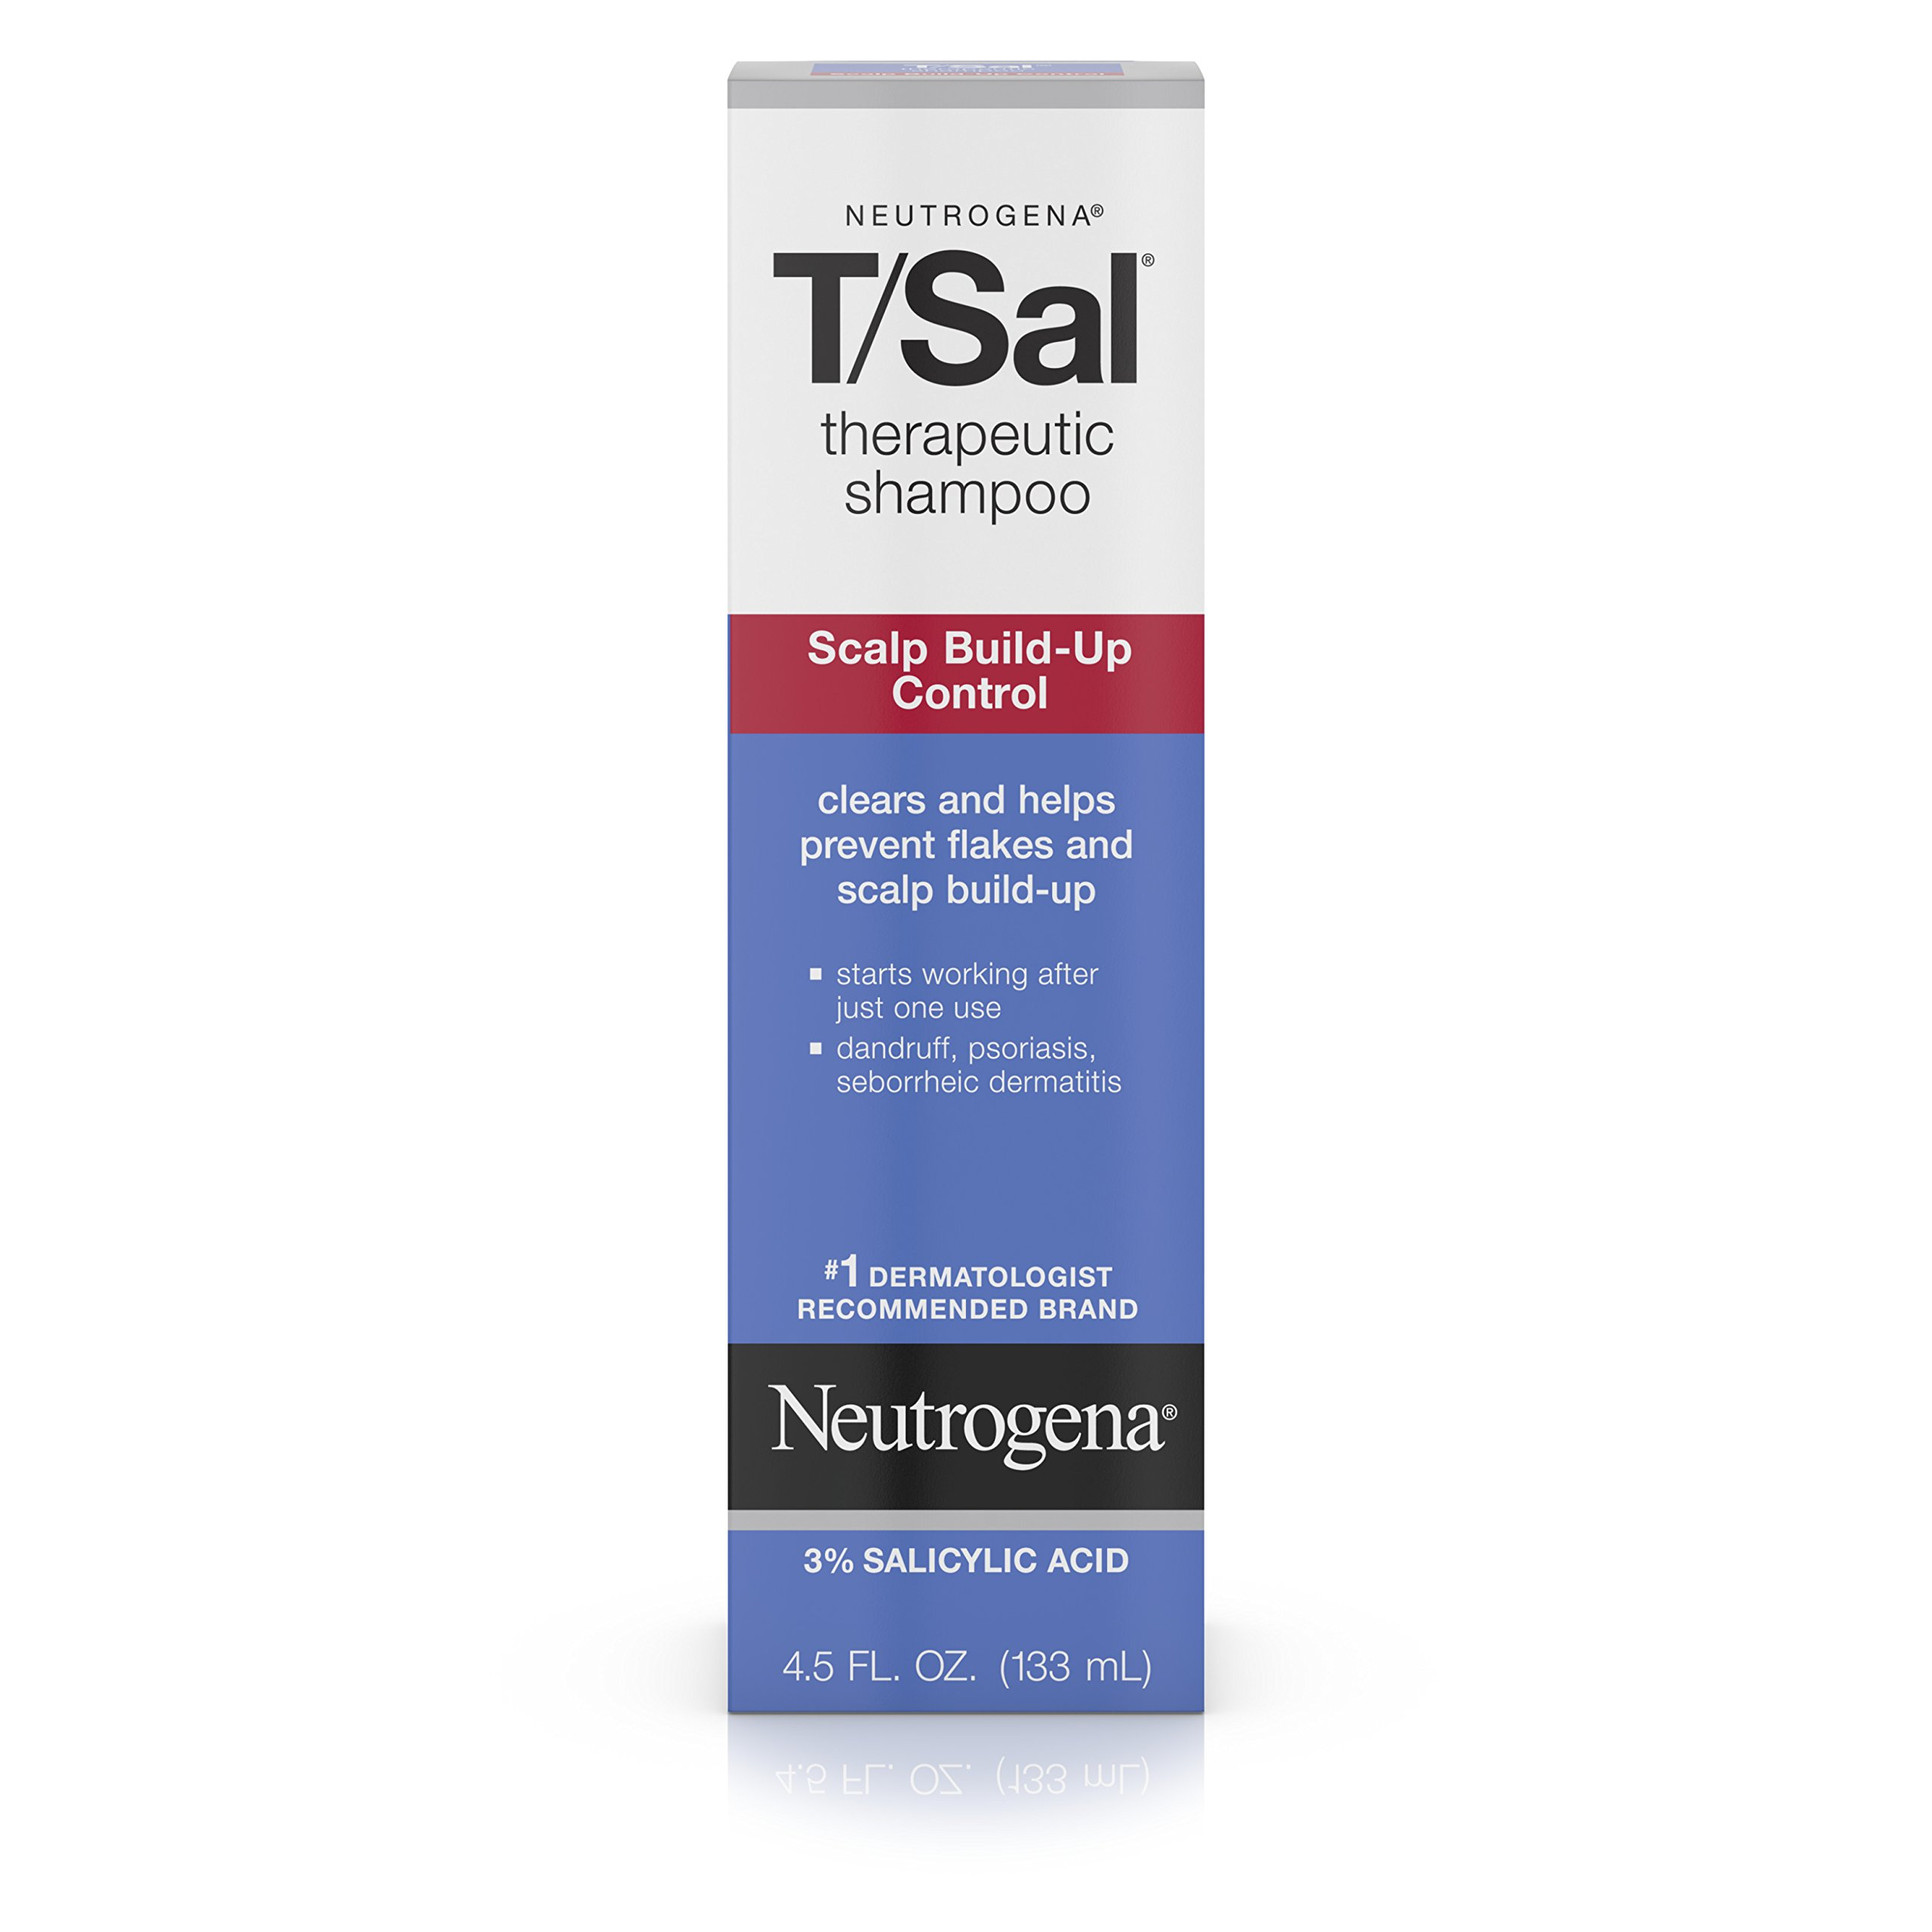 Neutrogena T/SAL Therapeutic Shampoo for Scalp Build-Up Control with Salicylic Acid, Scalp Treatment for Dandruff, Scalp Psoriasis & Seborrheic Dermatitis Relief, 4.5 fl. Oz (Pack of 6)